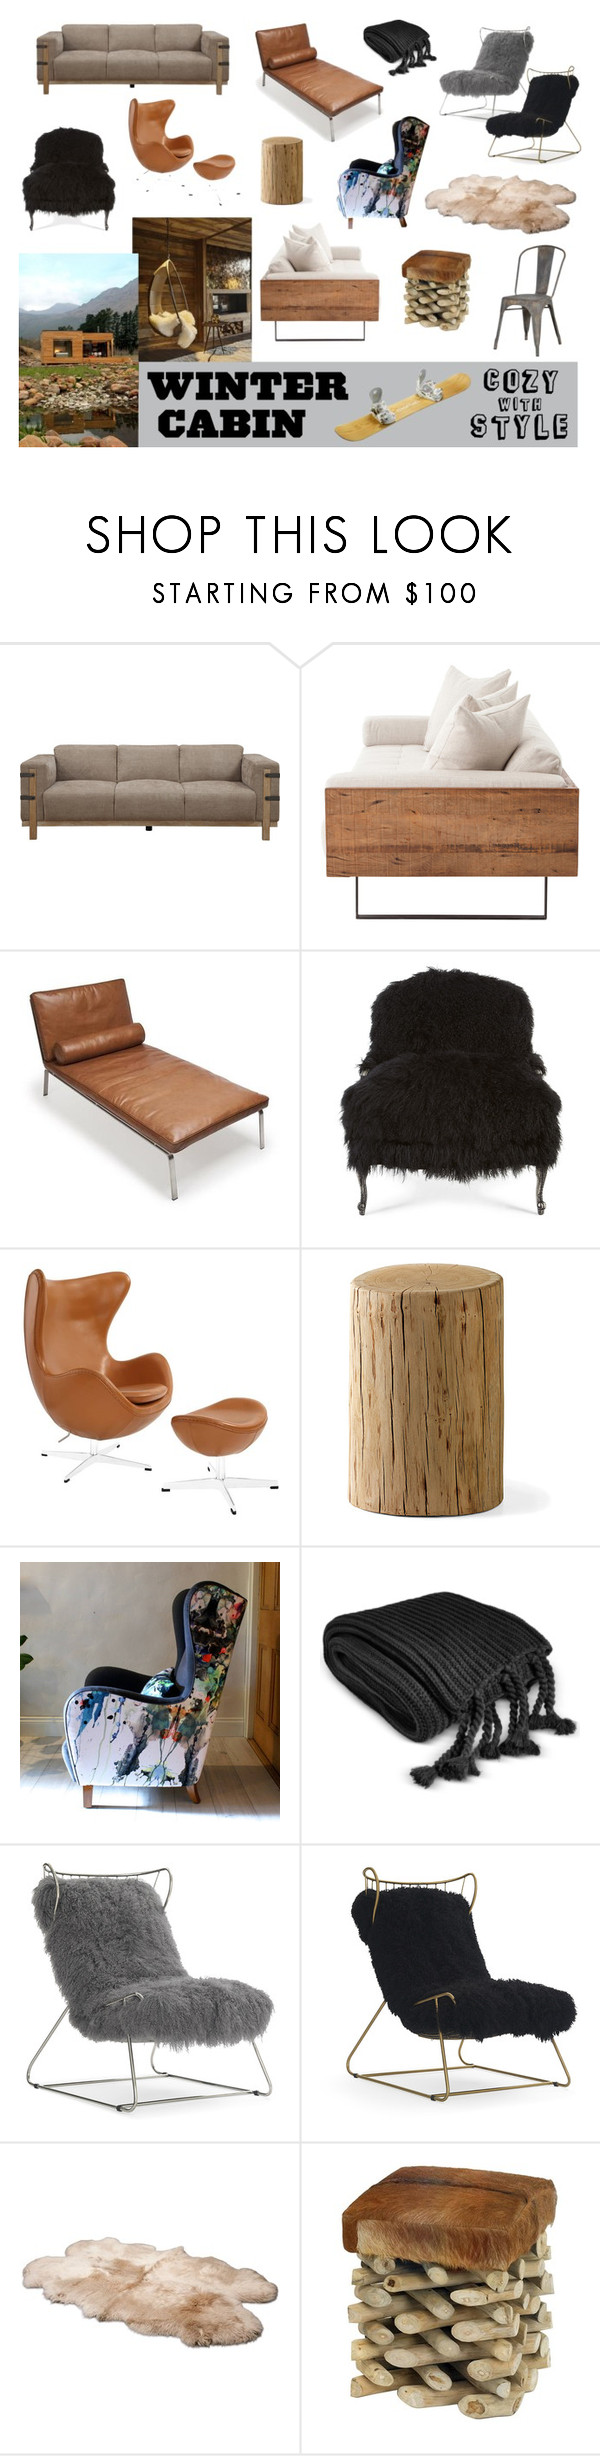 """Modern Cabin"" by staggemeier-amaral ❤ liked on Polyvore featuring interior, interiors, interior design, home, home decor, interior decorating, Old Hickory Tannery, Charter Club, Mitchell Gold + Bob Williams and UGG"